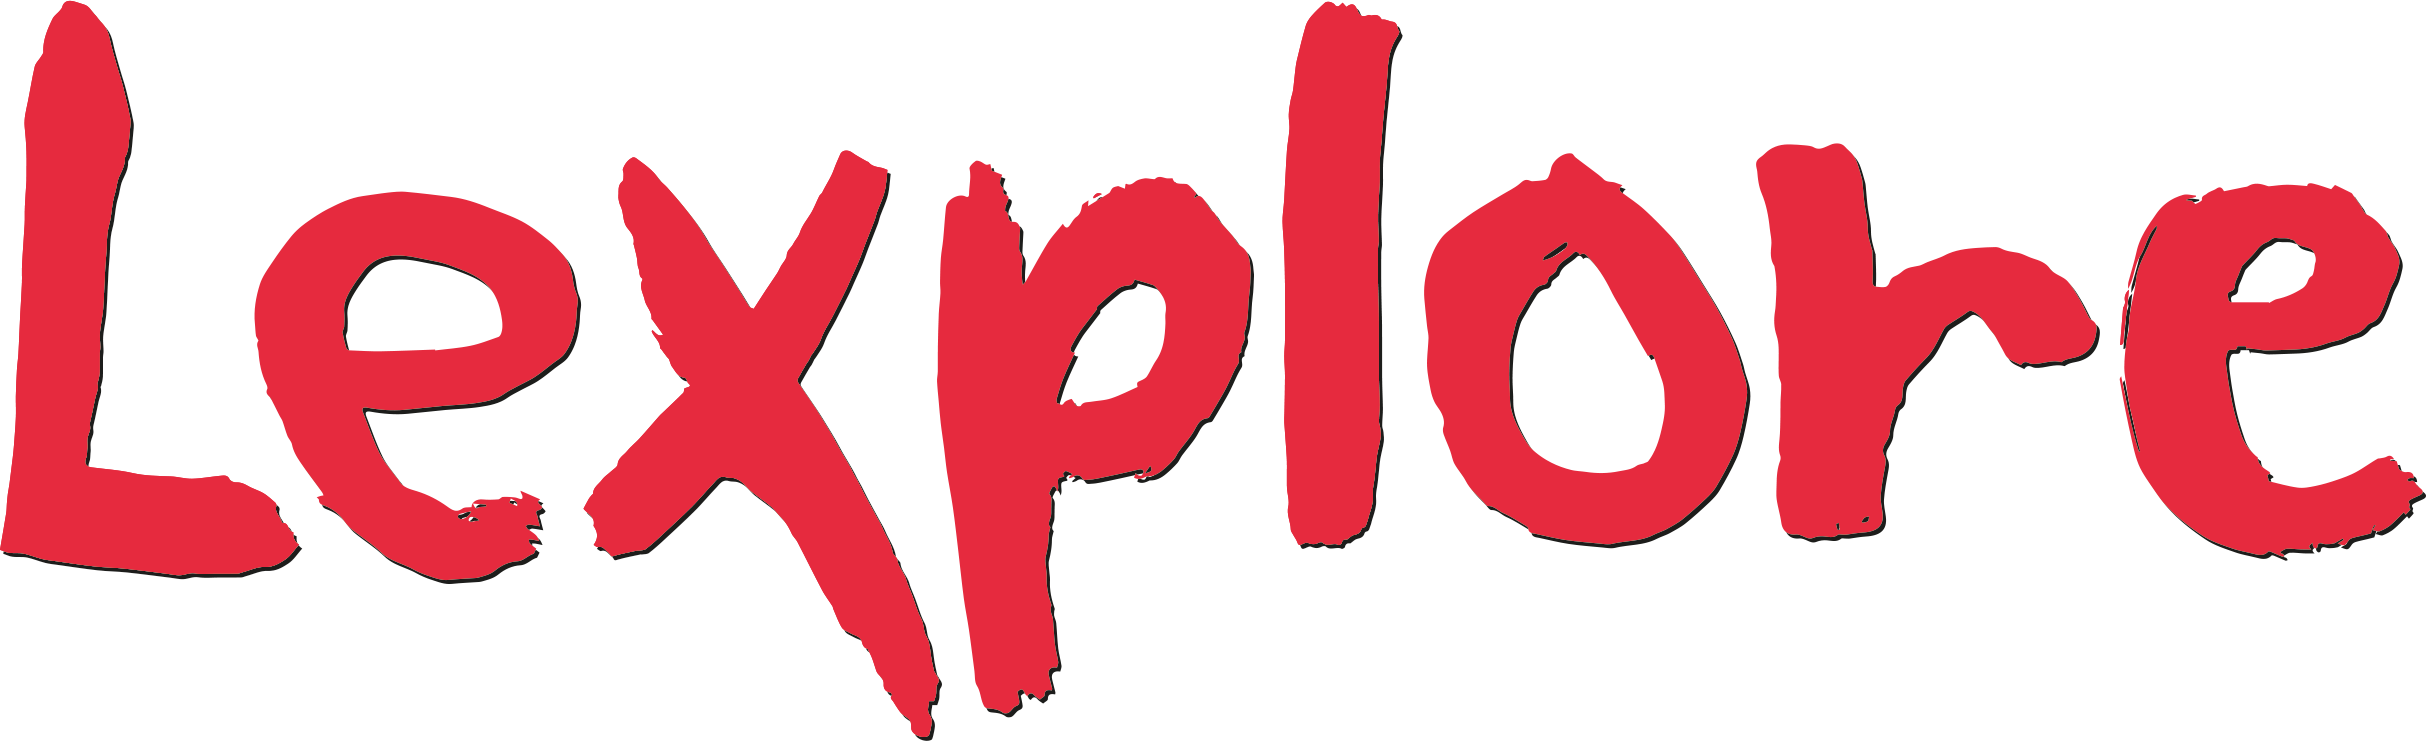 Lexplore_logo_red_shadow_high_whitebg-2